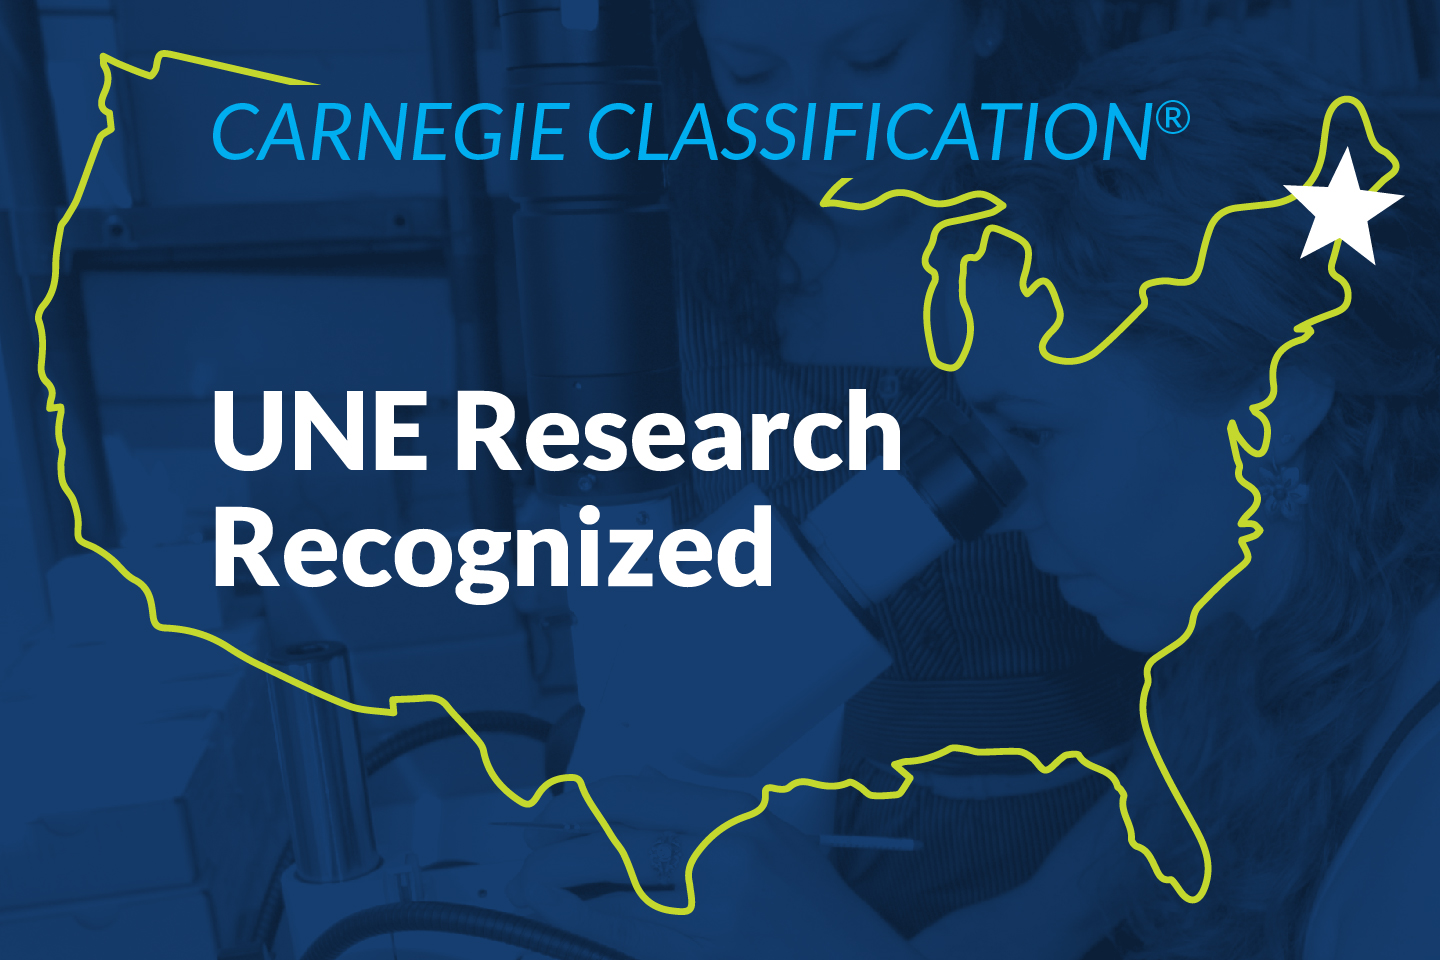 U N E Research Award from Carnegie Classification graphic